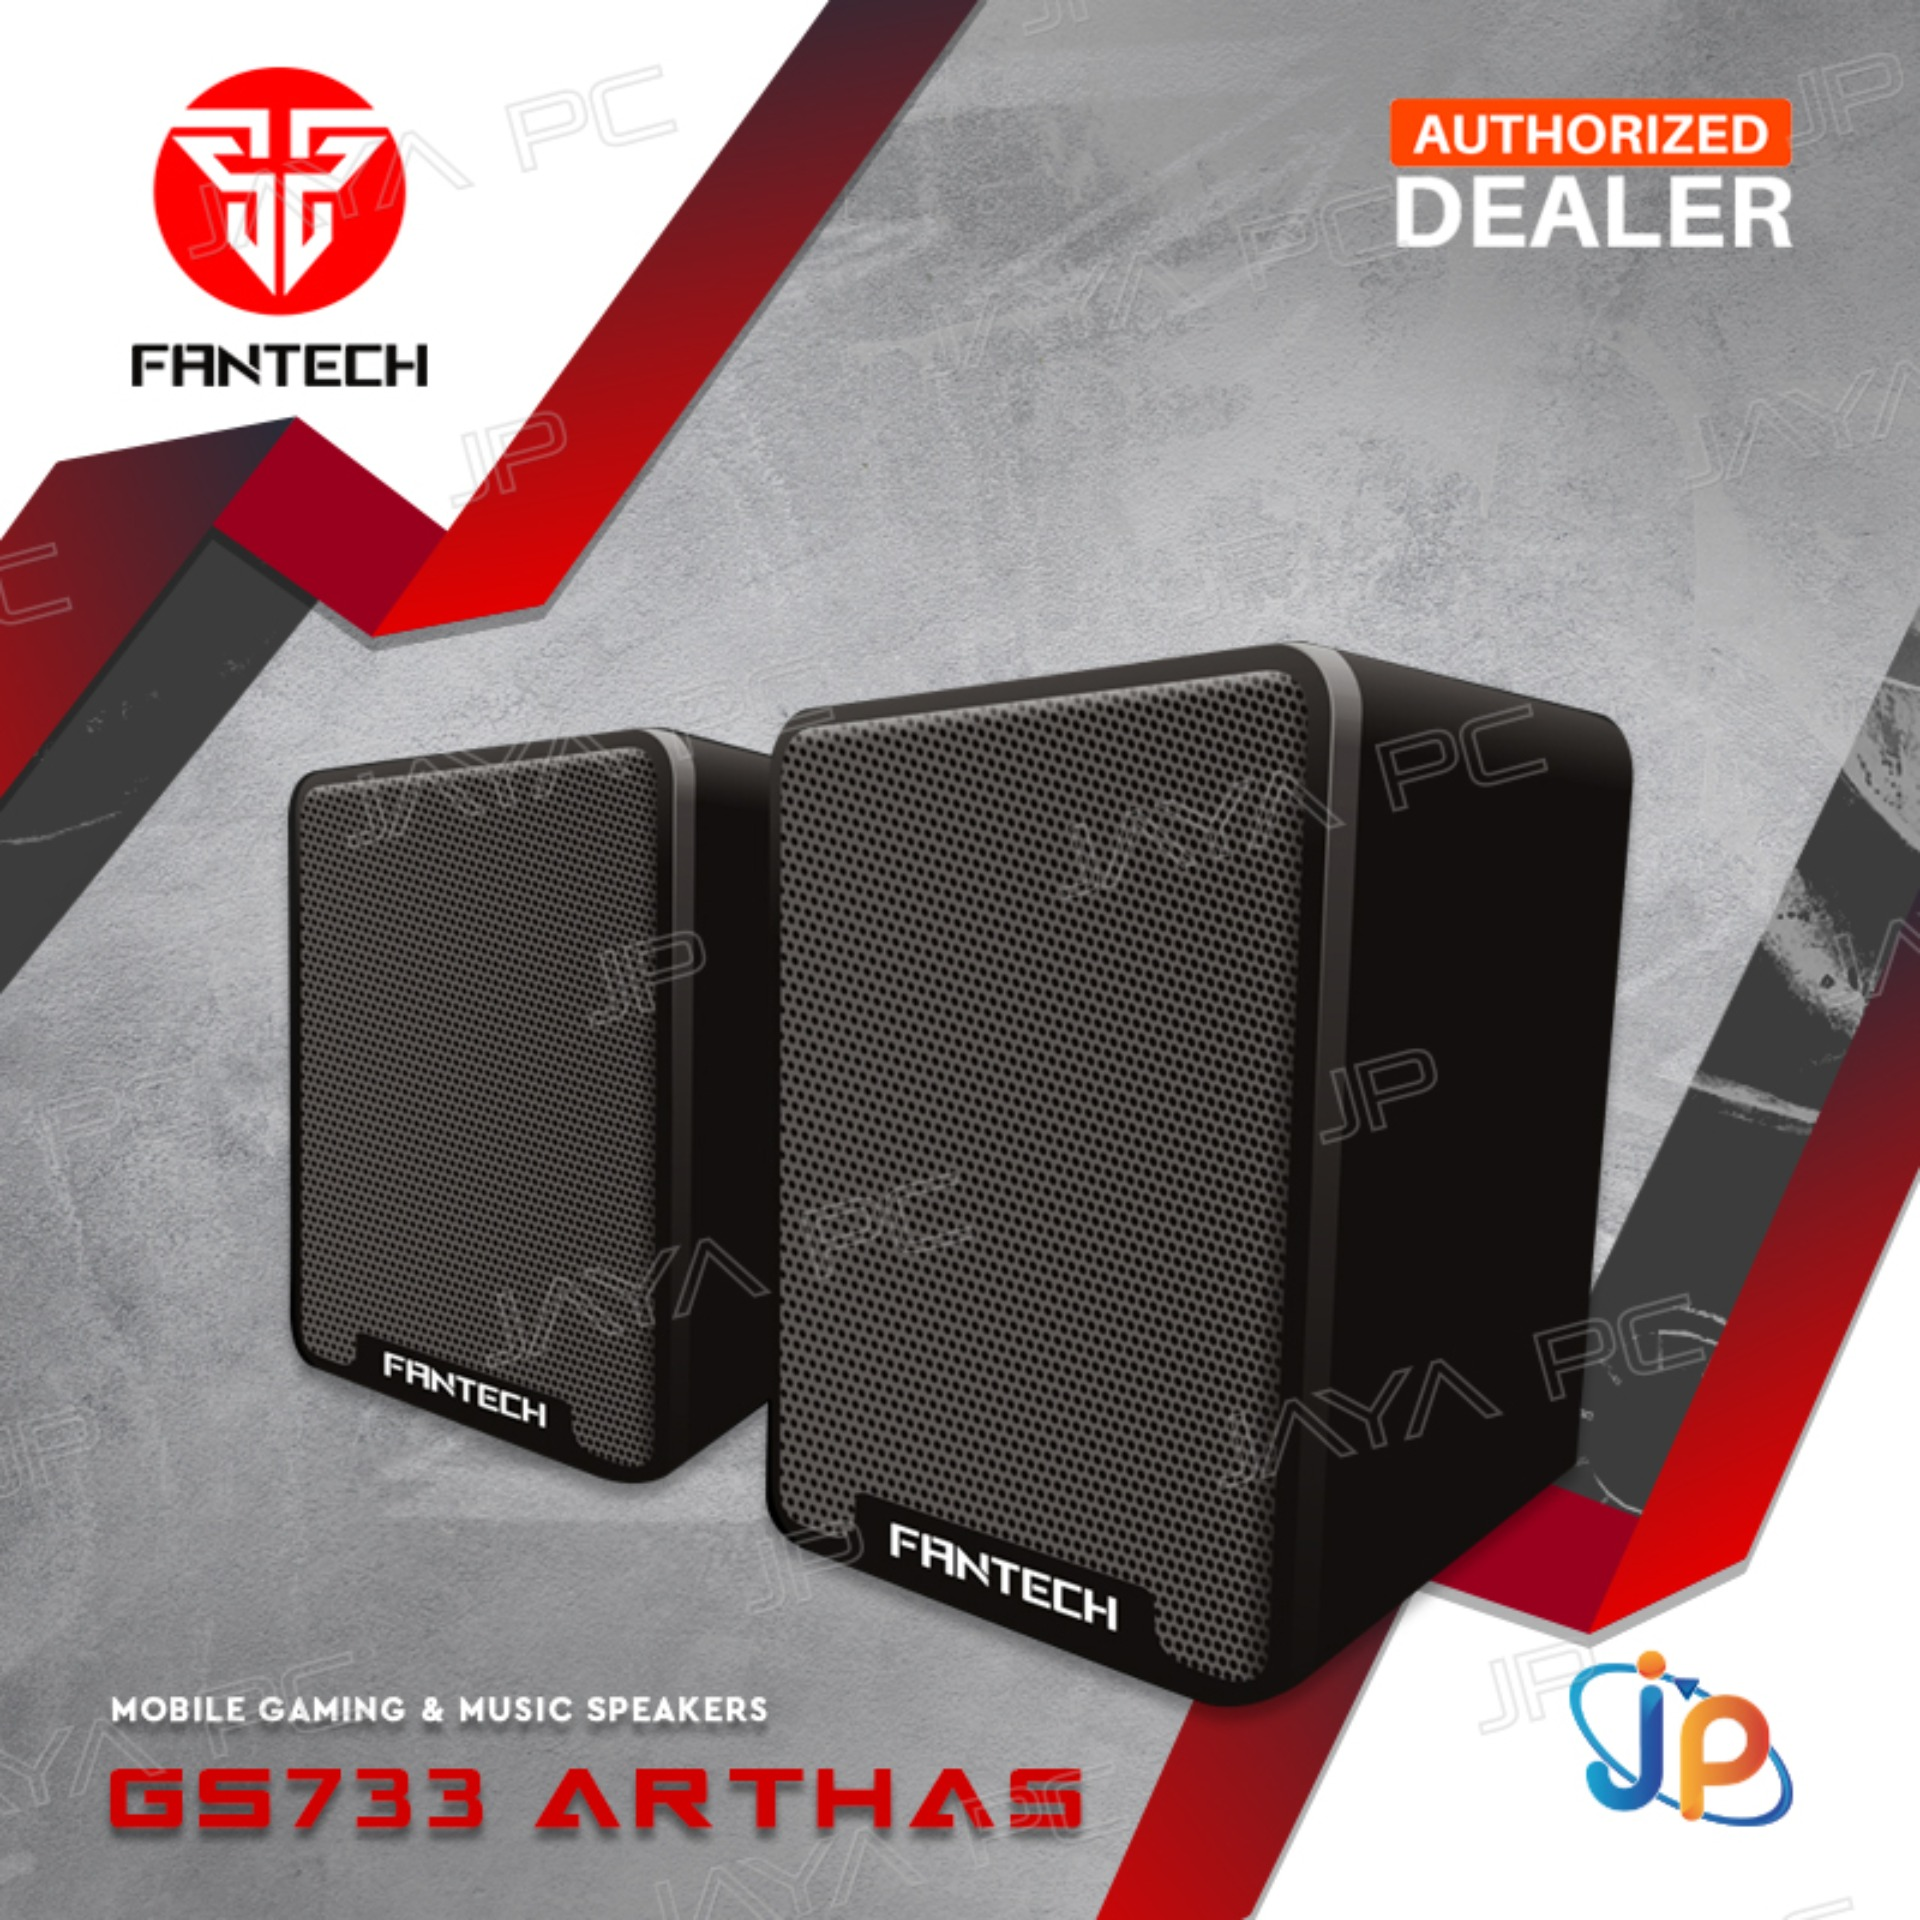 https://www.lazada.co.id/products/speaker-fantech-arthas-gs733-gaming-speaker-fantech-i636238083-s884614093.html